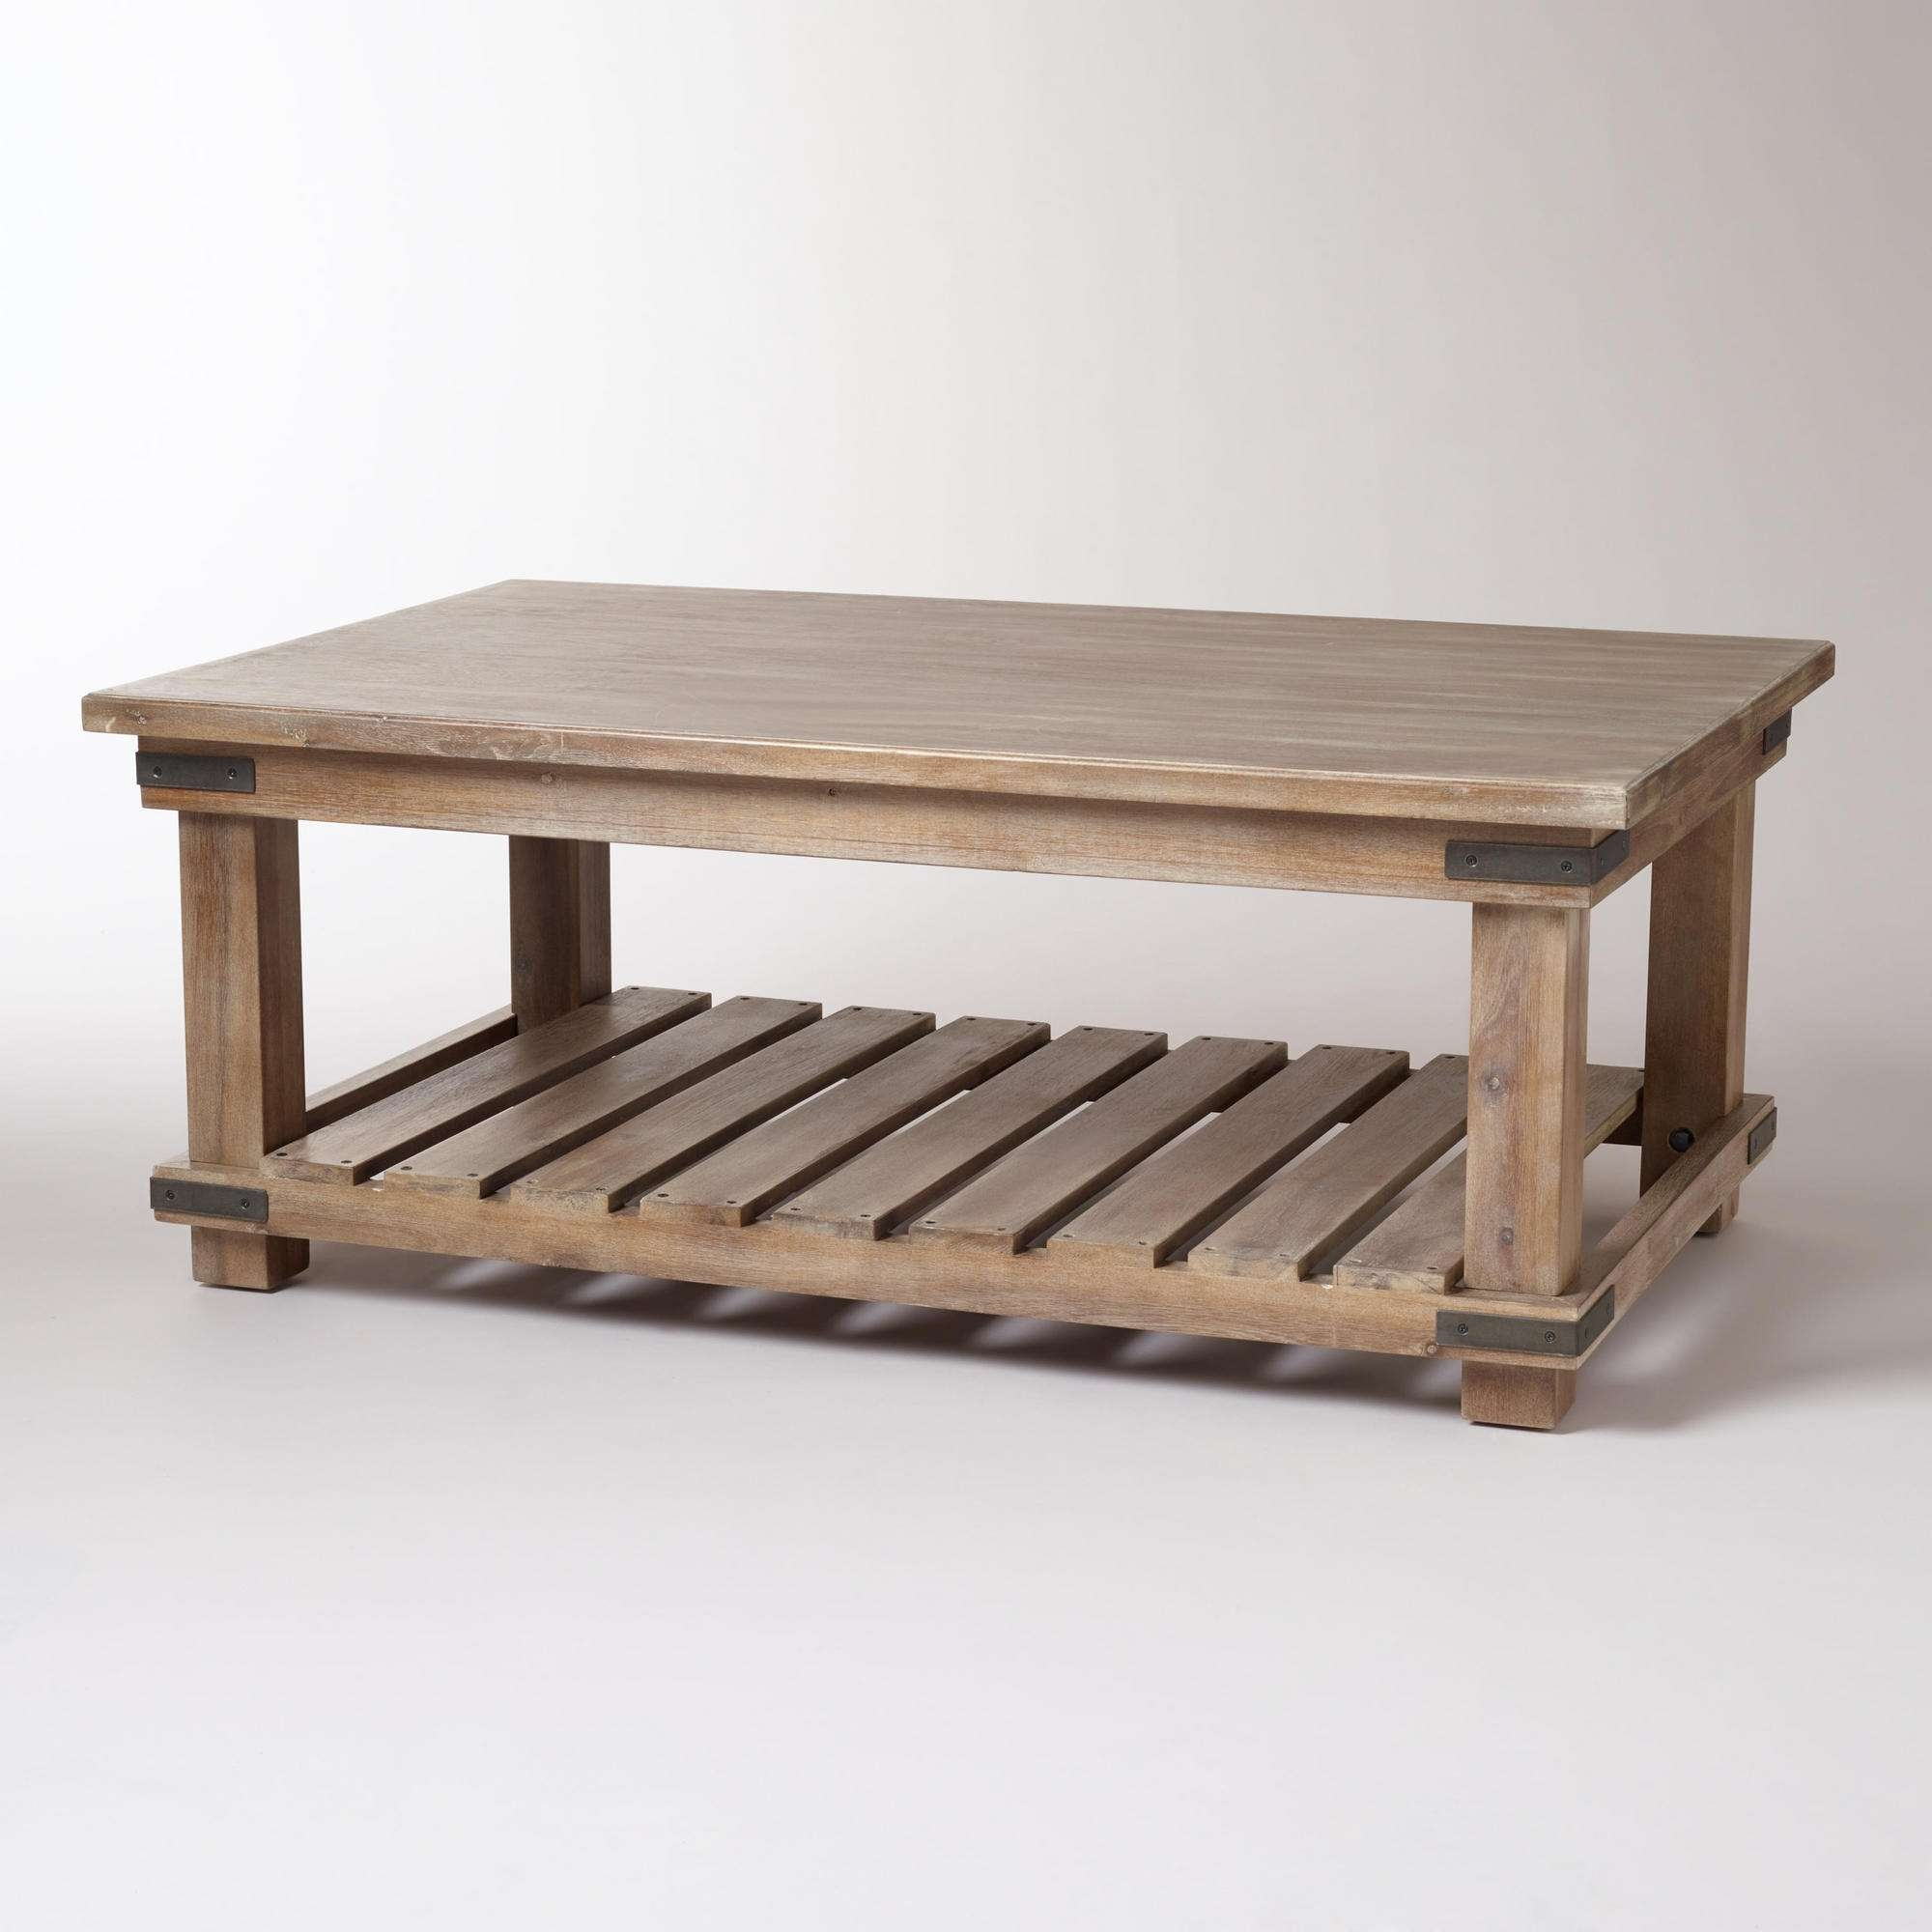 Brilliant Beech Wood Coffee Table On Interior Design For Home With Fashionable Beech Coffee Tables (View 3 of 20)